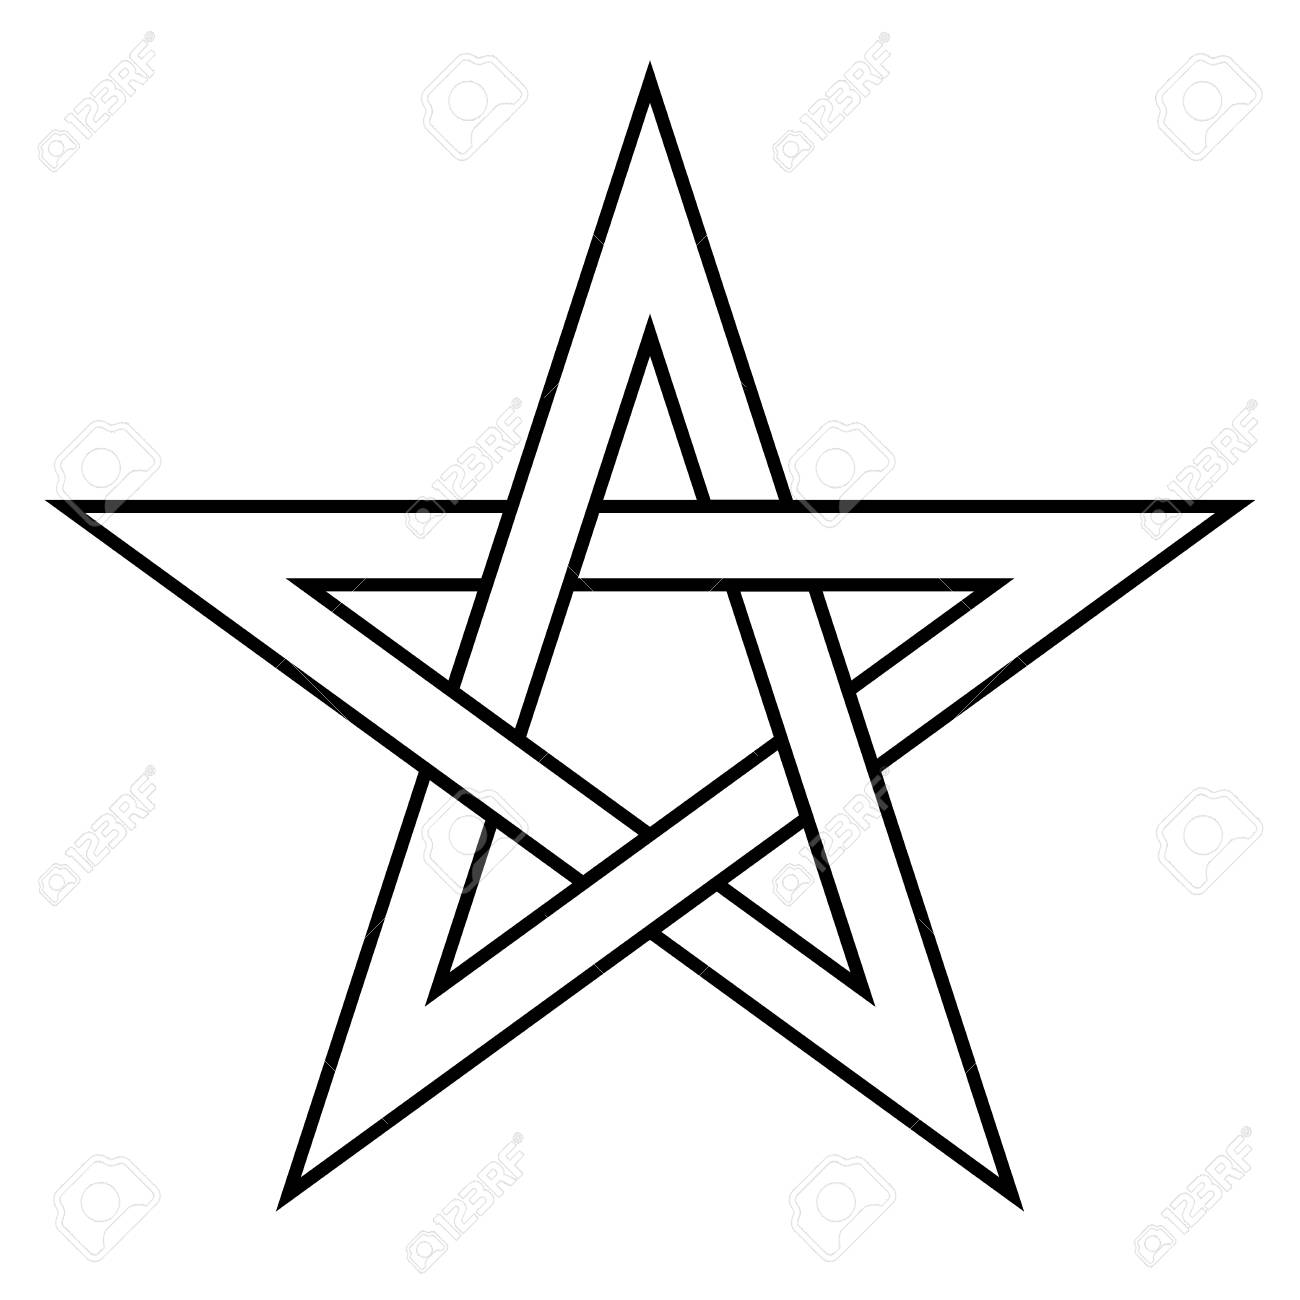 bd677c60b1b7e Pentagram sign - five-pointed star. Magical symbol of faith. Simple flat  white